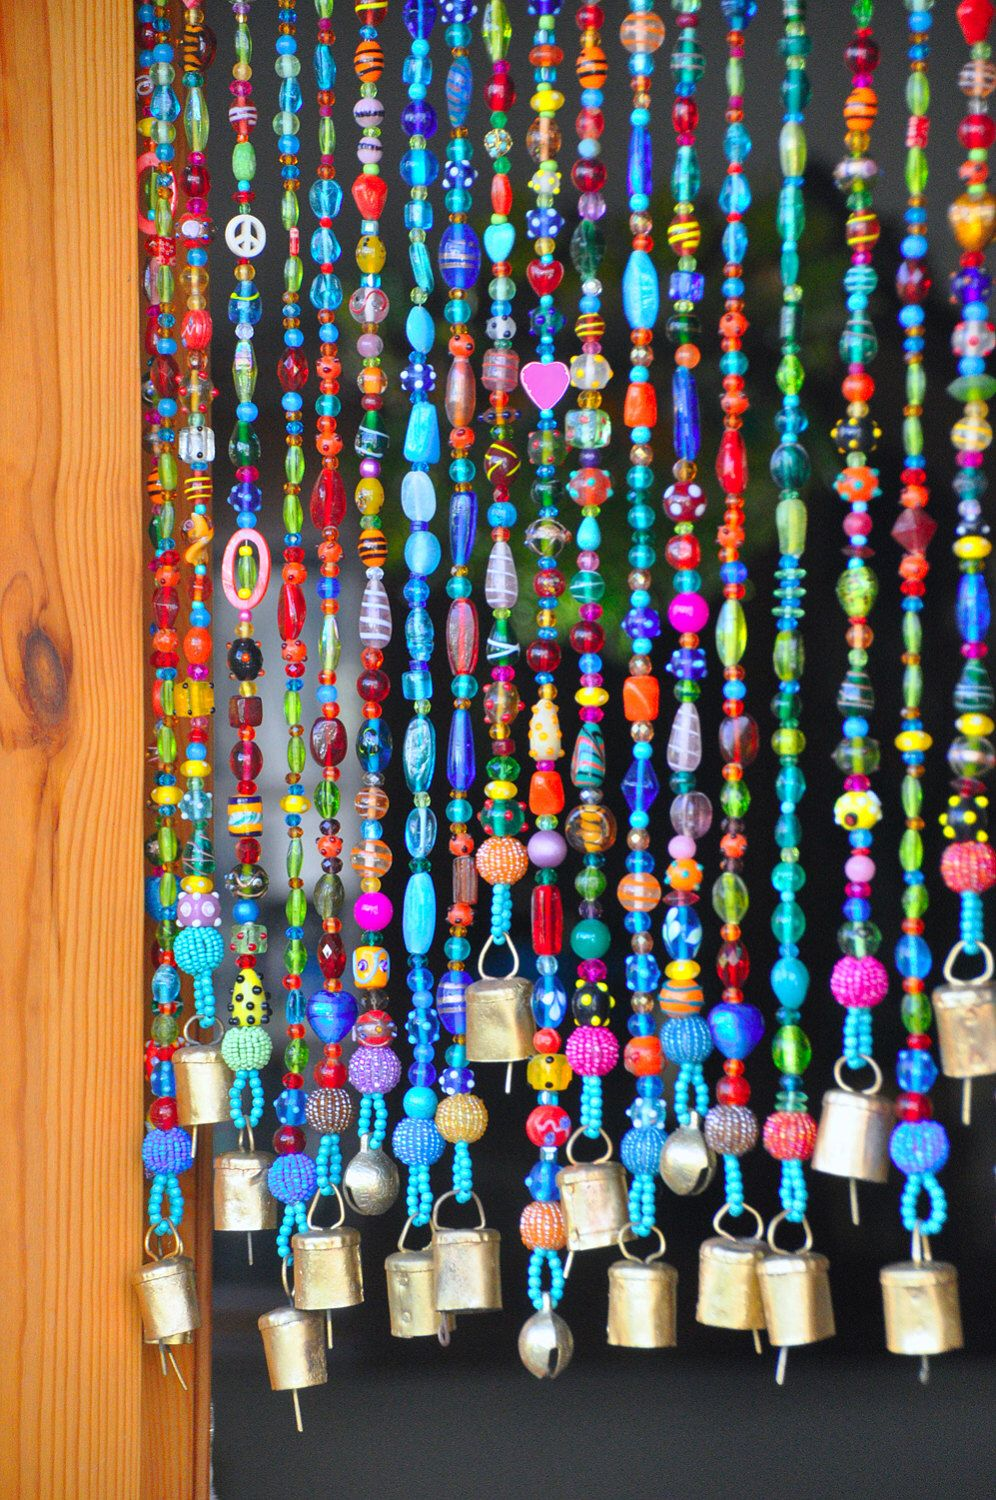 Beaded curtain Bead Curtain Bohemian Curtain Window curtain Beaded Door Curtains Hanging Door Beads beaded wall hanging Door beads & Beaded curtain Bead Curtain Bohemian Curtain Window curtain ...